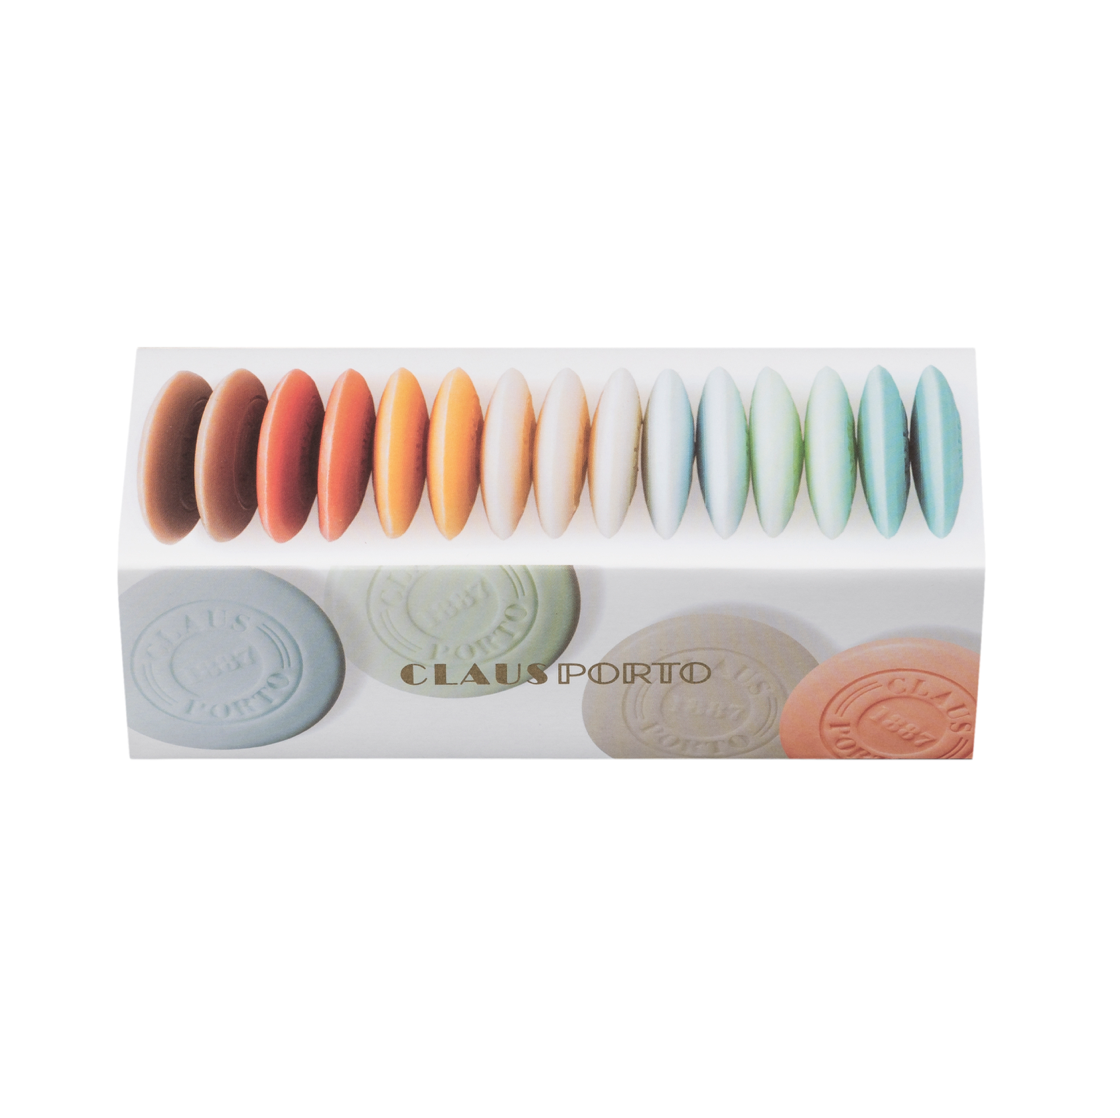 GUEST SOAP GIFT BOX